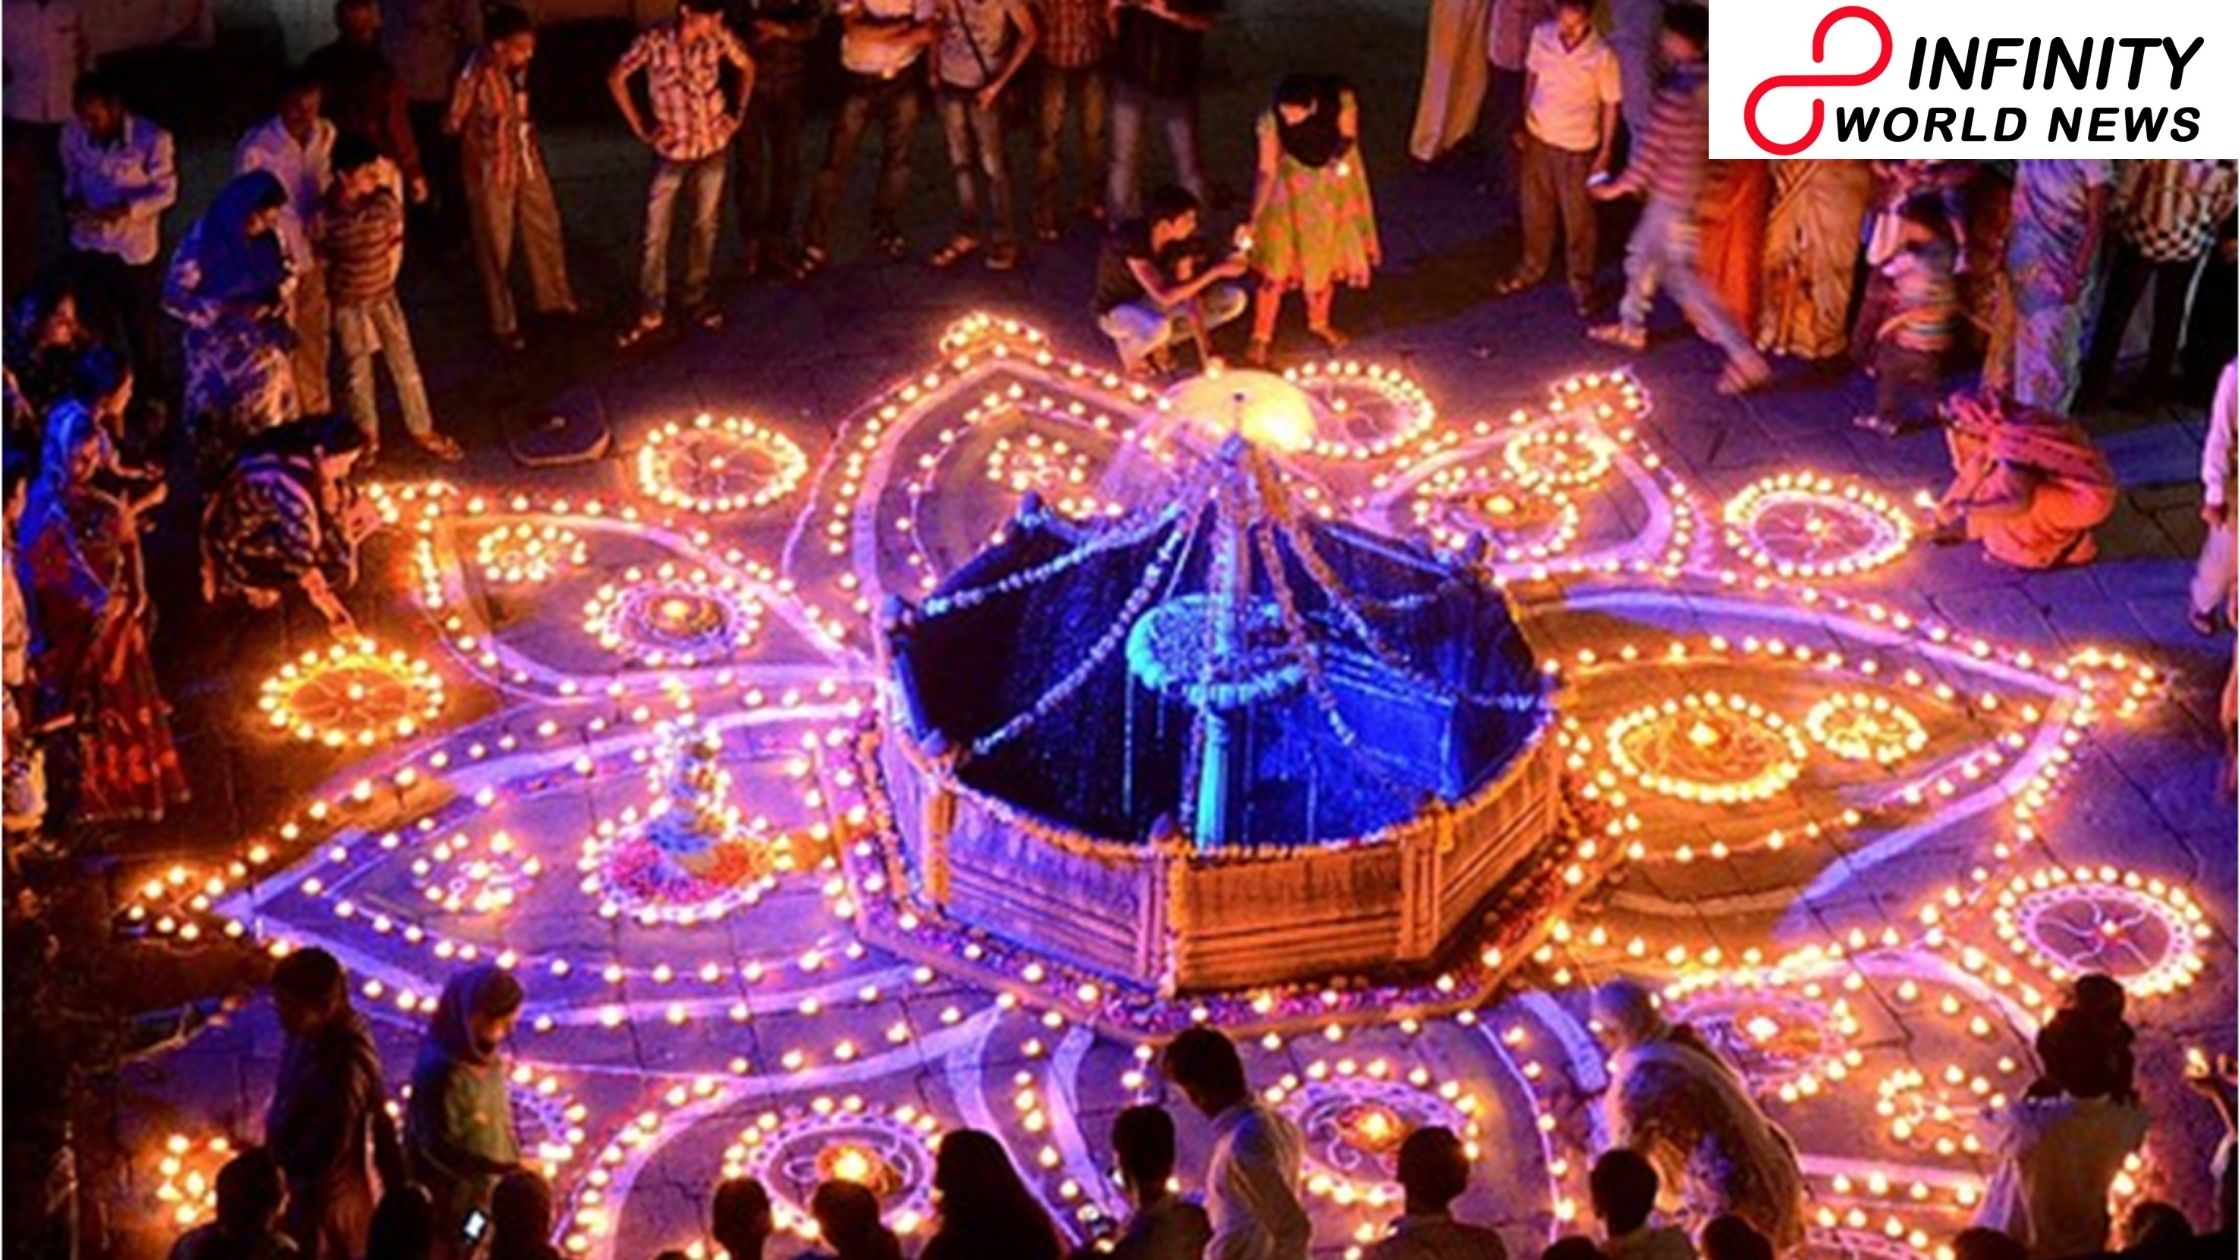 Managing consume wounds on Diwali